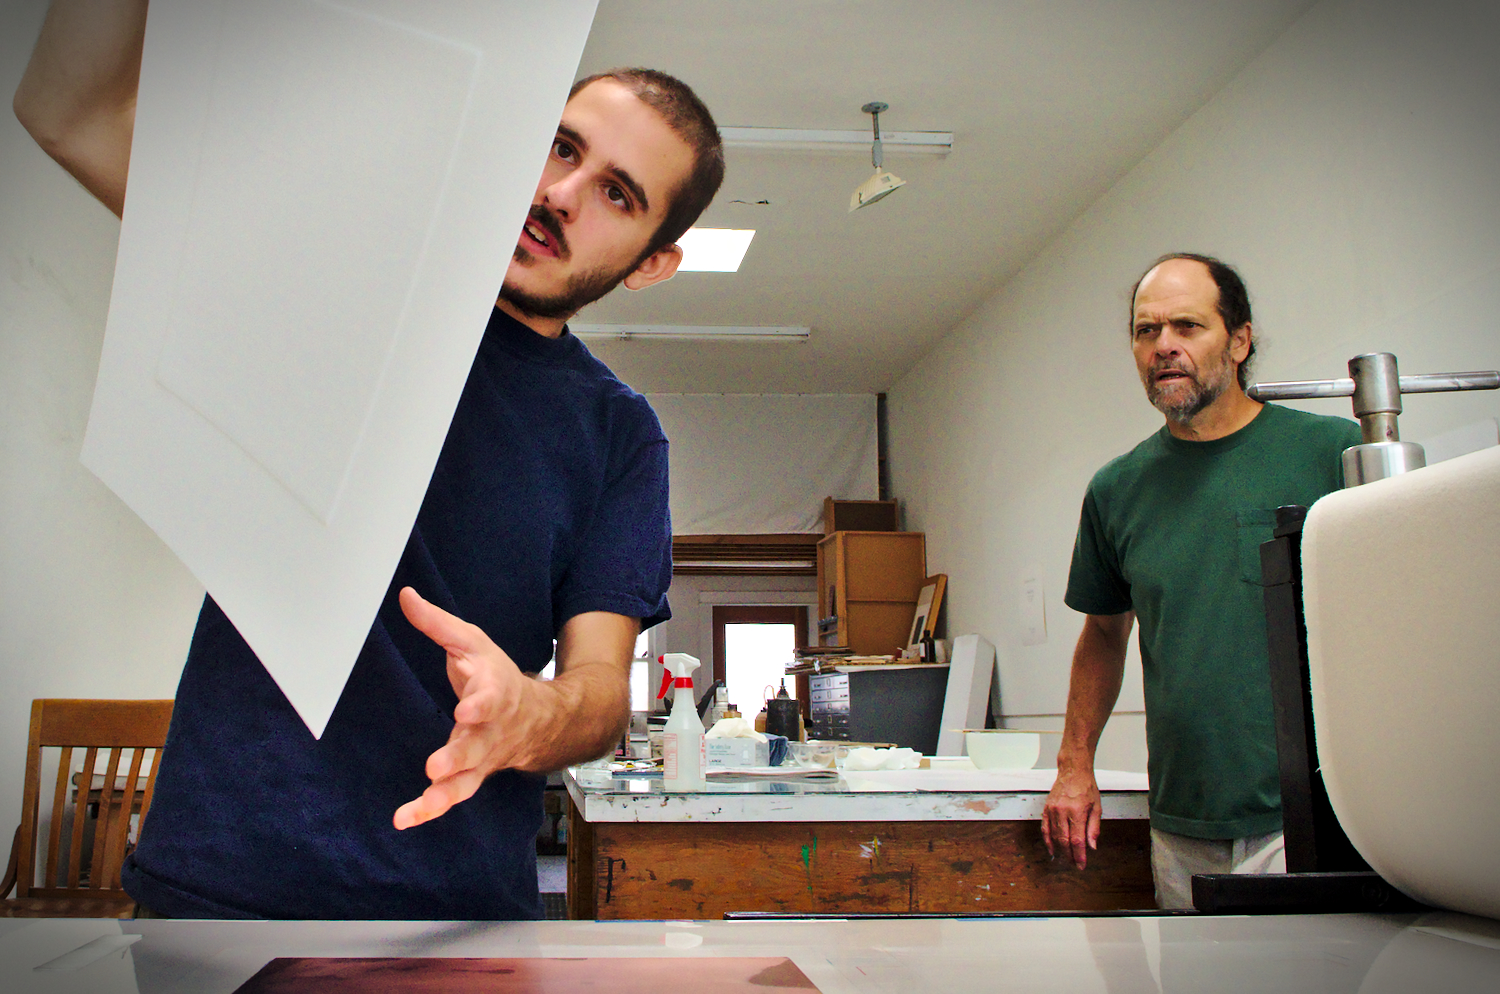 The renowned printmaster Jacob Samuel (right) continues to regularly edit professionnal artists. Assisted by Sam Gessow (left), a young printmaster, Jacob controls an Intaglio editions from the NYC artist Tom Sachs.